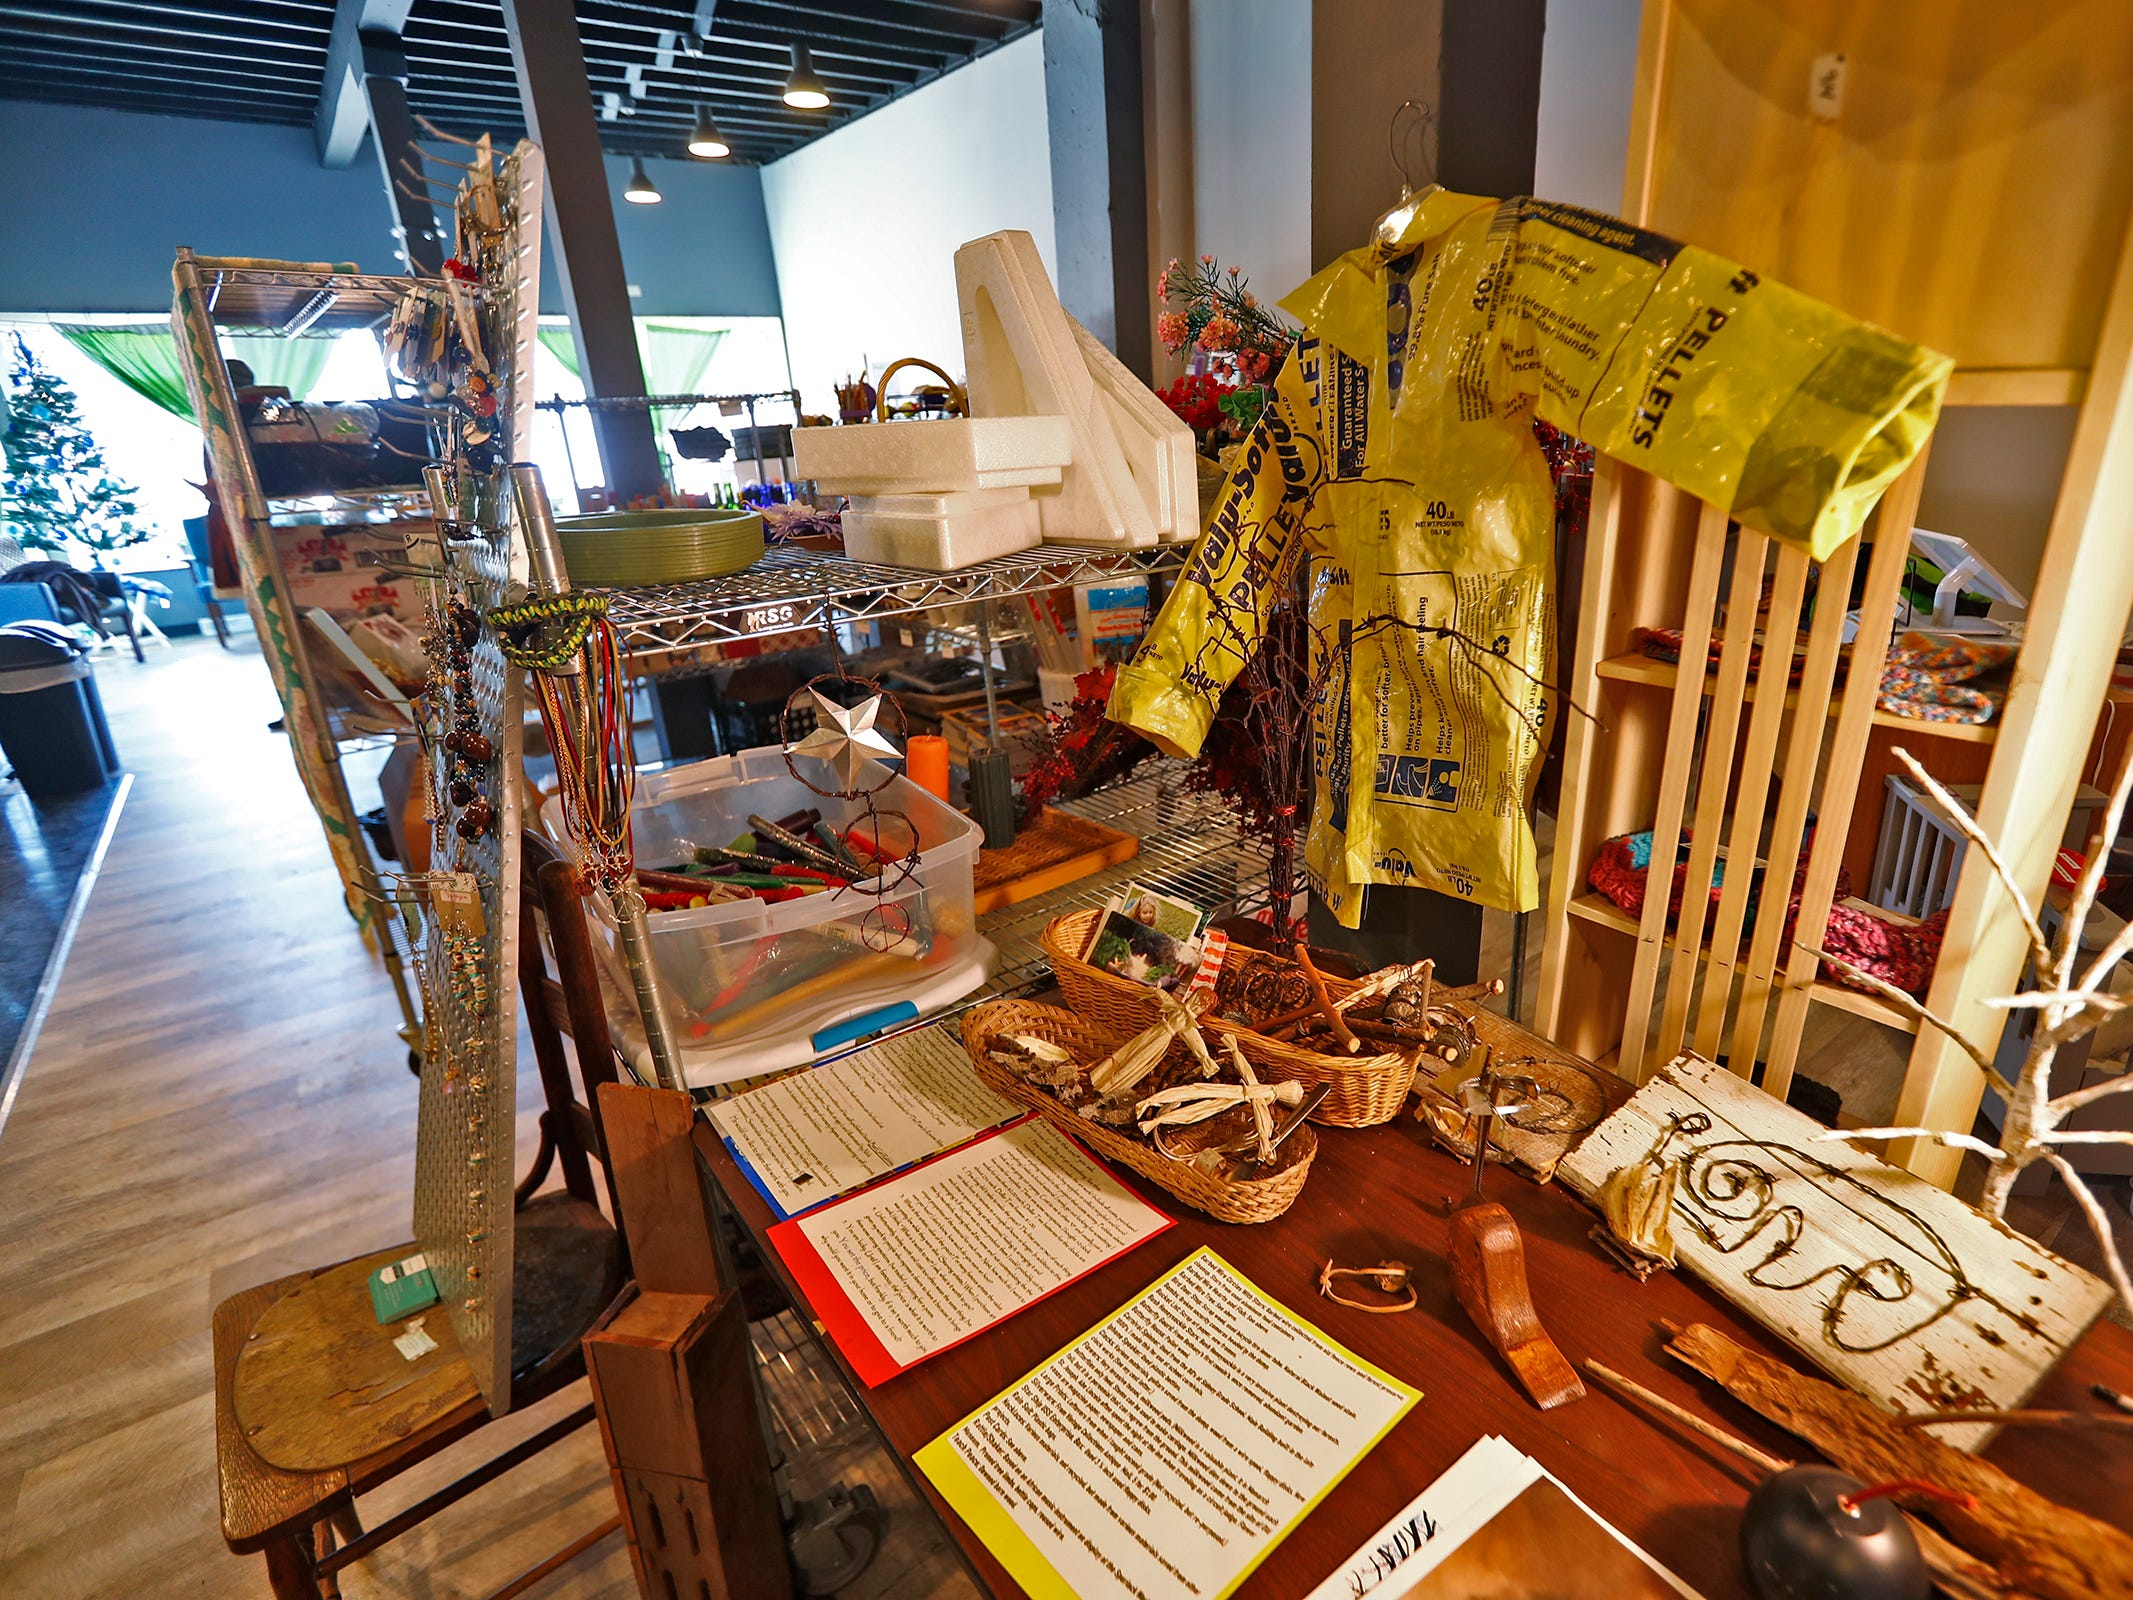 Crafts and art made by others are seen for sale in this corner at ReCraft, Tuesday, Dec. 11, 2018.  ReCraft was born out of Bethany Daugherty's love of crafting and her interest in environmental activism.  At the secondhand craft and hobby store, Daugherty also teaches workshops.  Sustainability and environmentalism are the focus of the store.